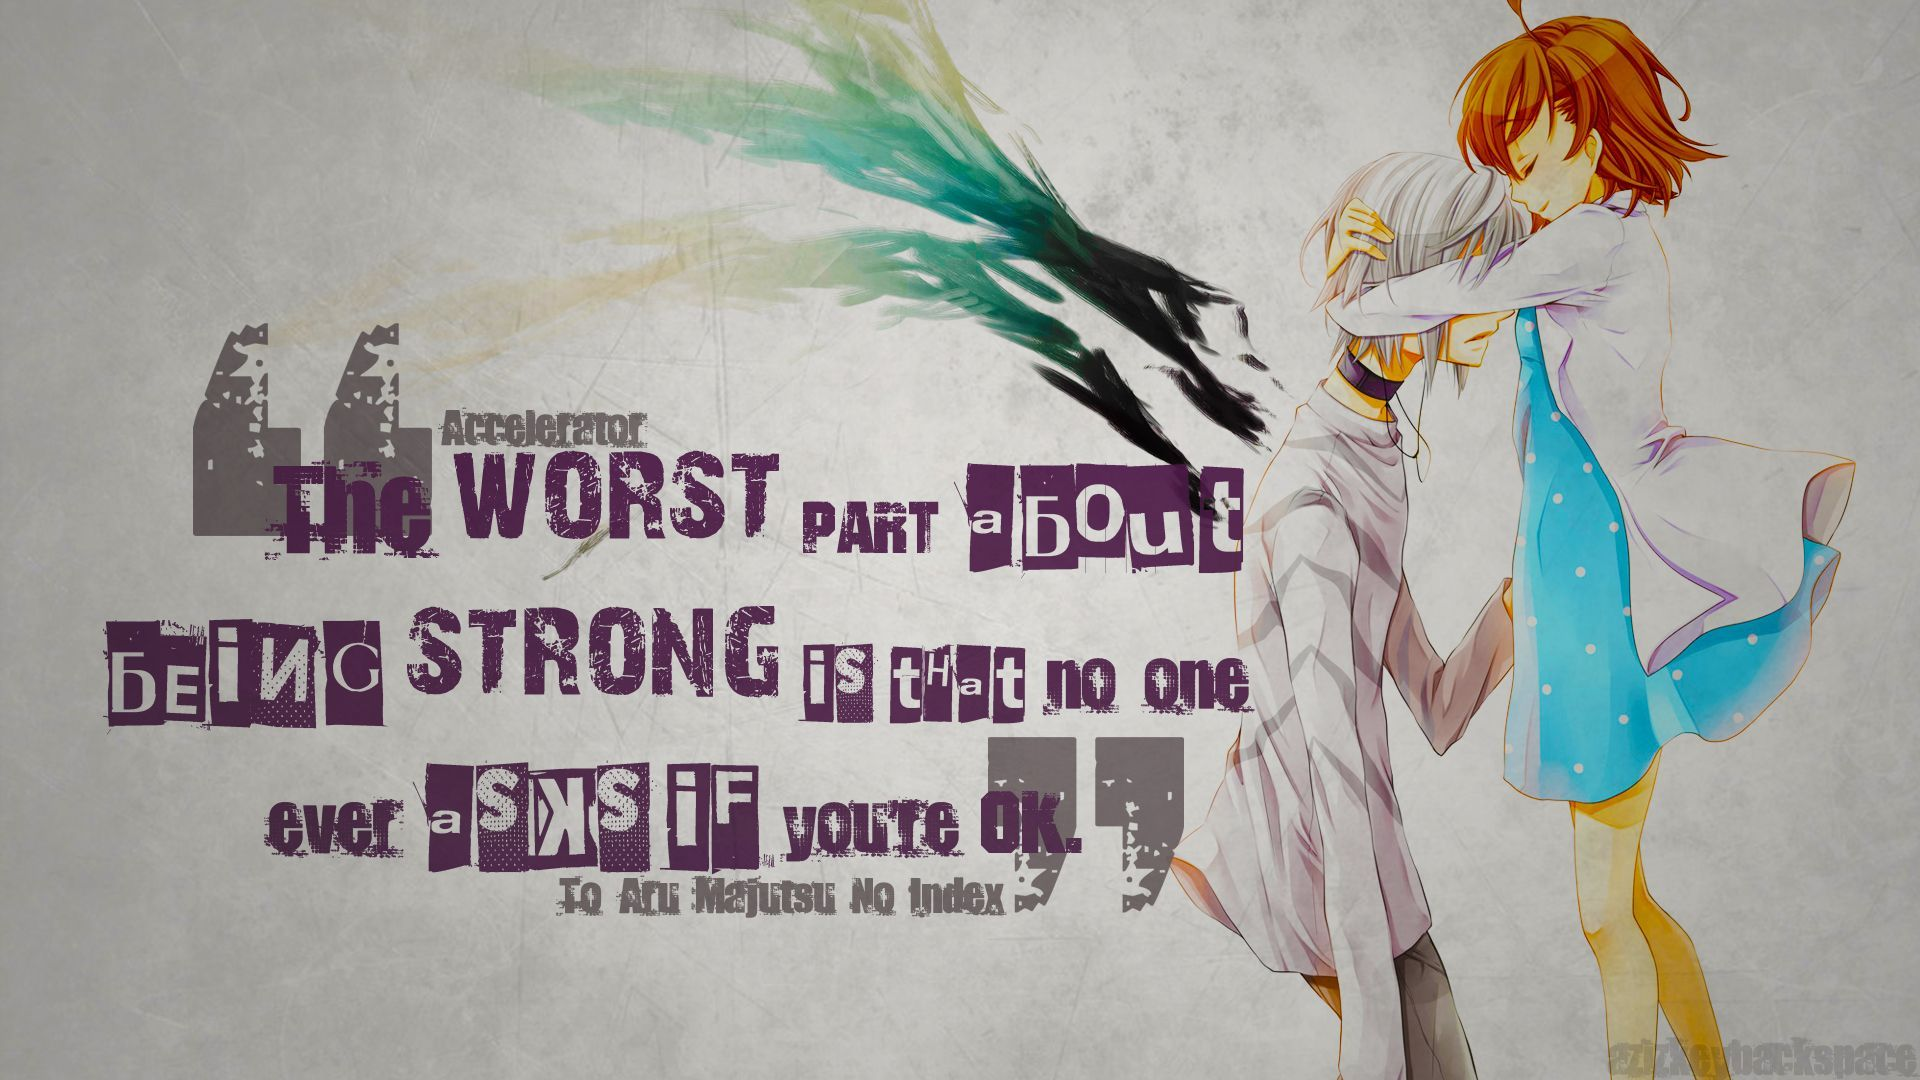 Download 46+ Background Quotes Anime Gratis